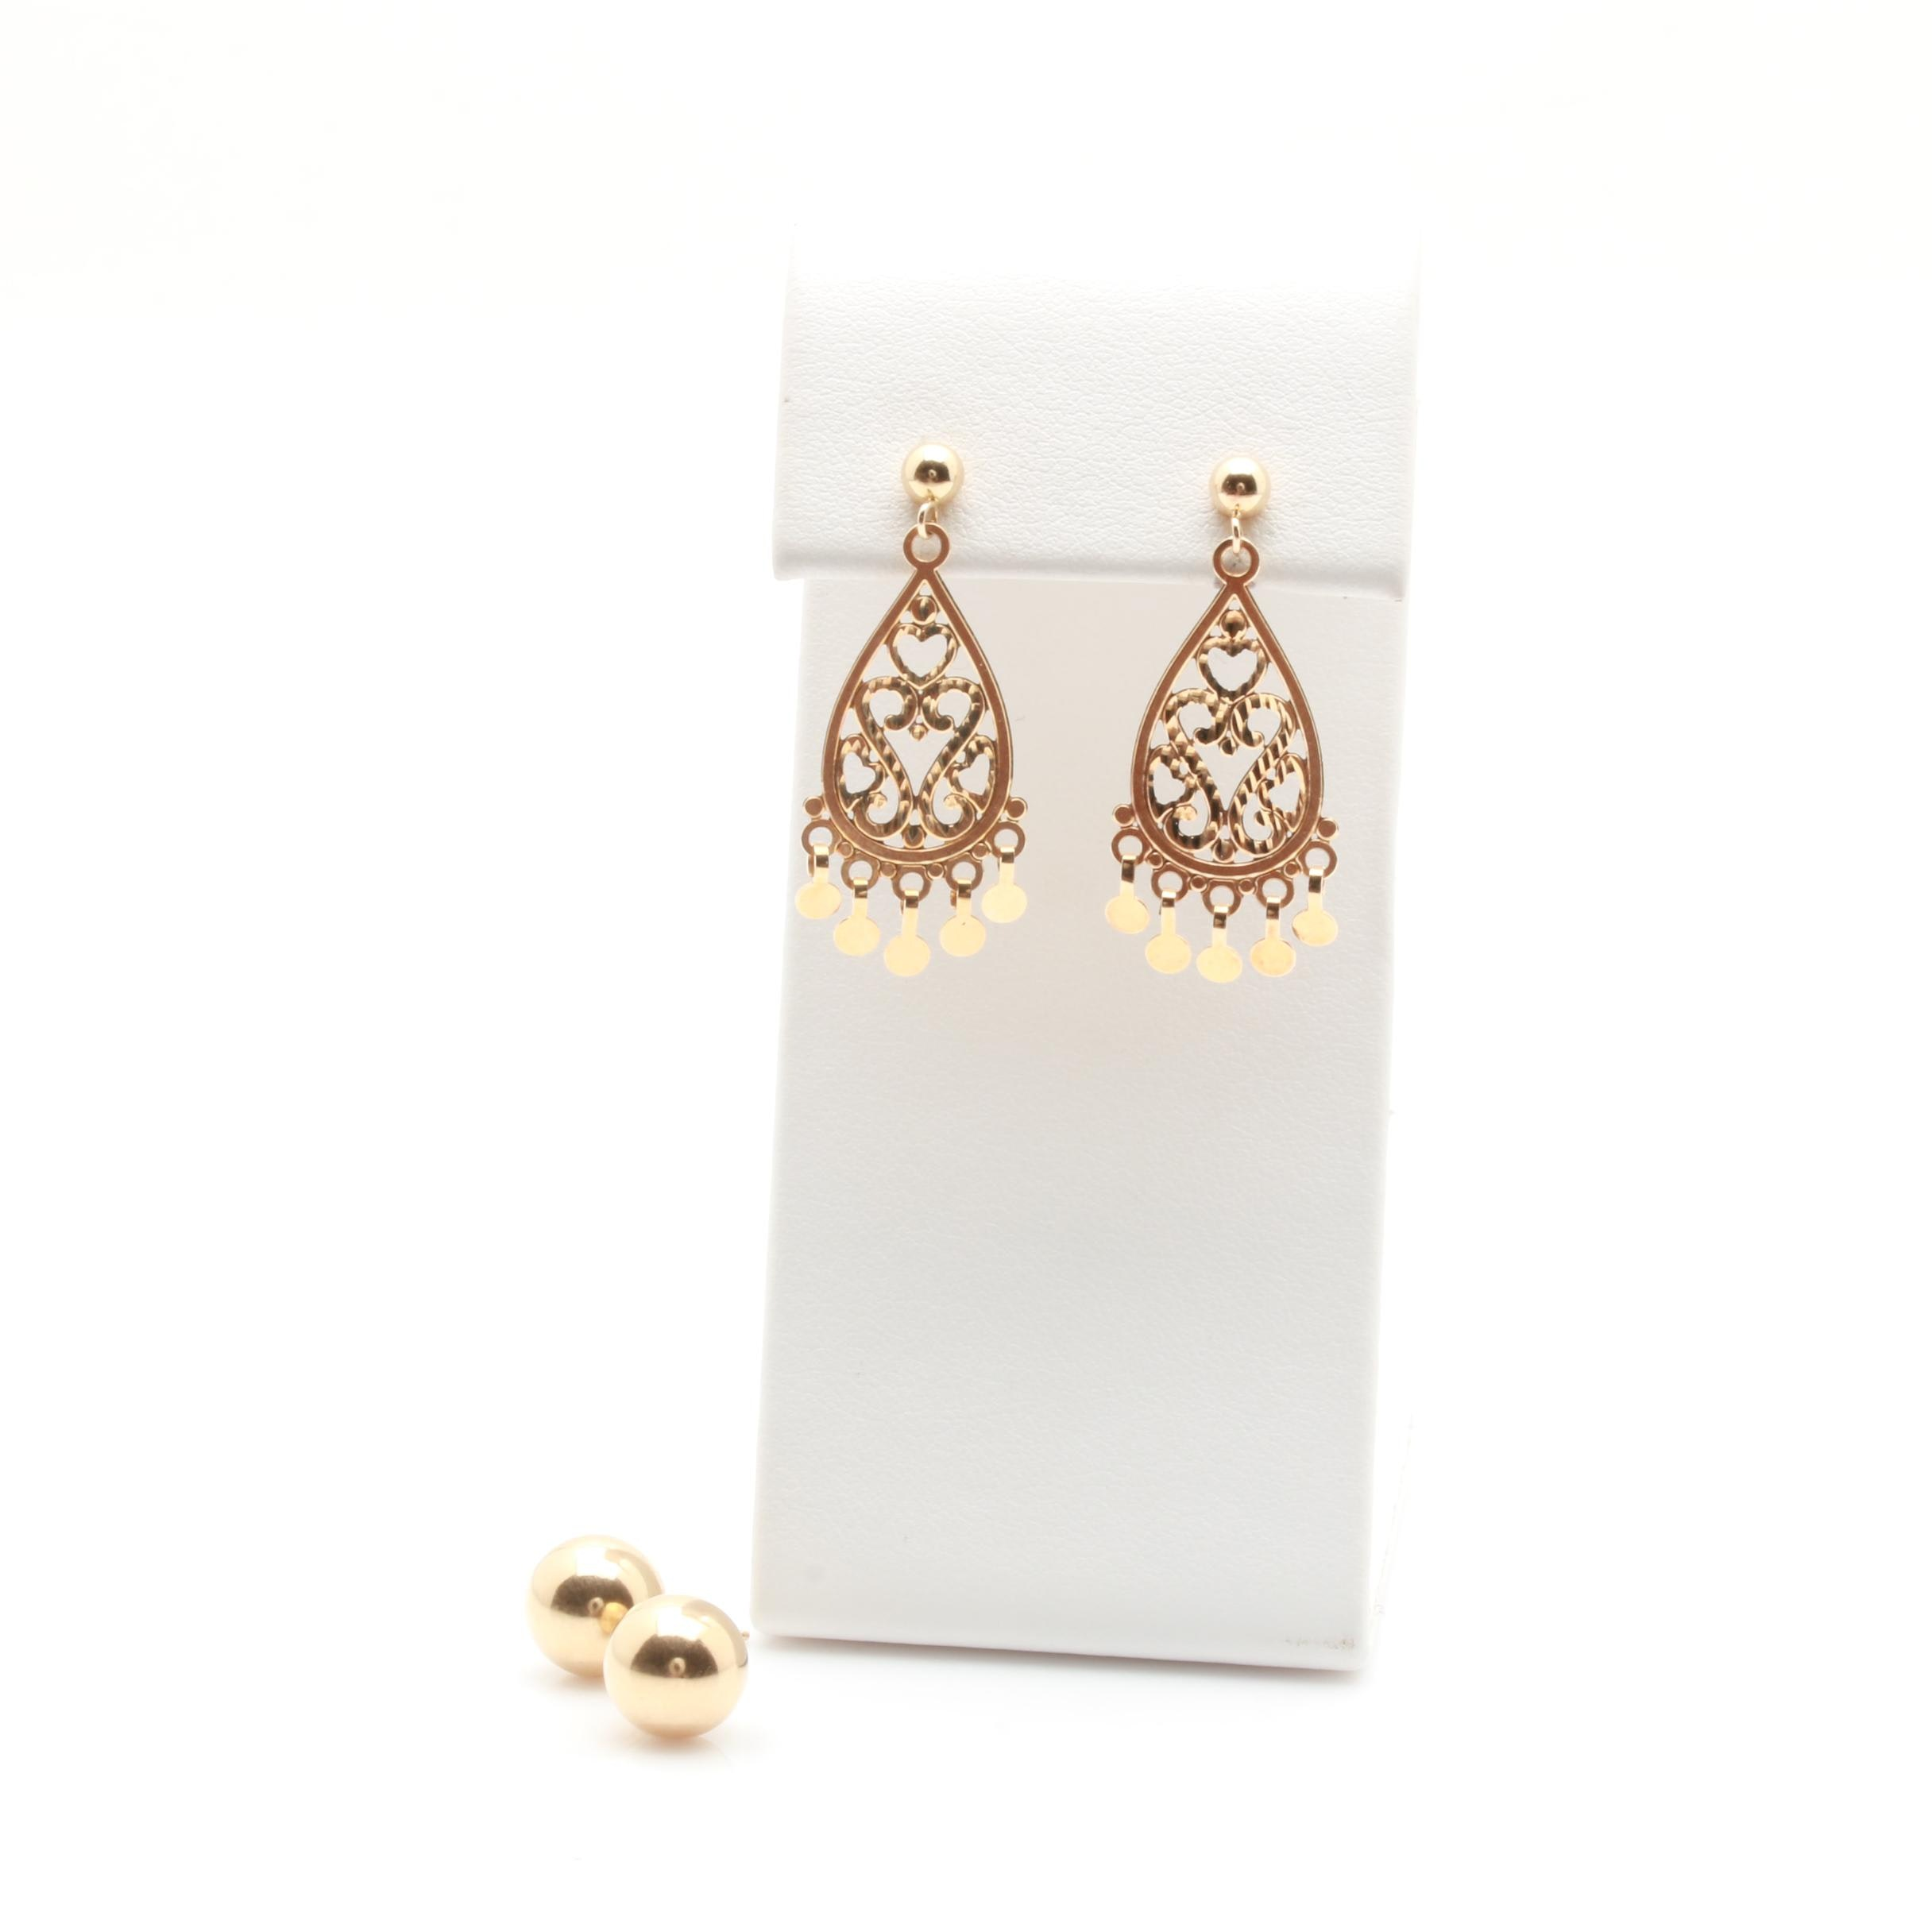 14K Yellow Gold Ball Stud and Chandelier Style Earrings